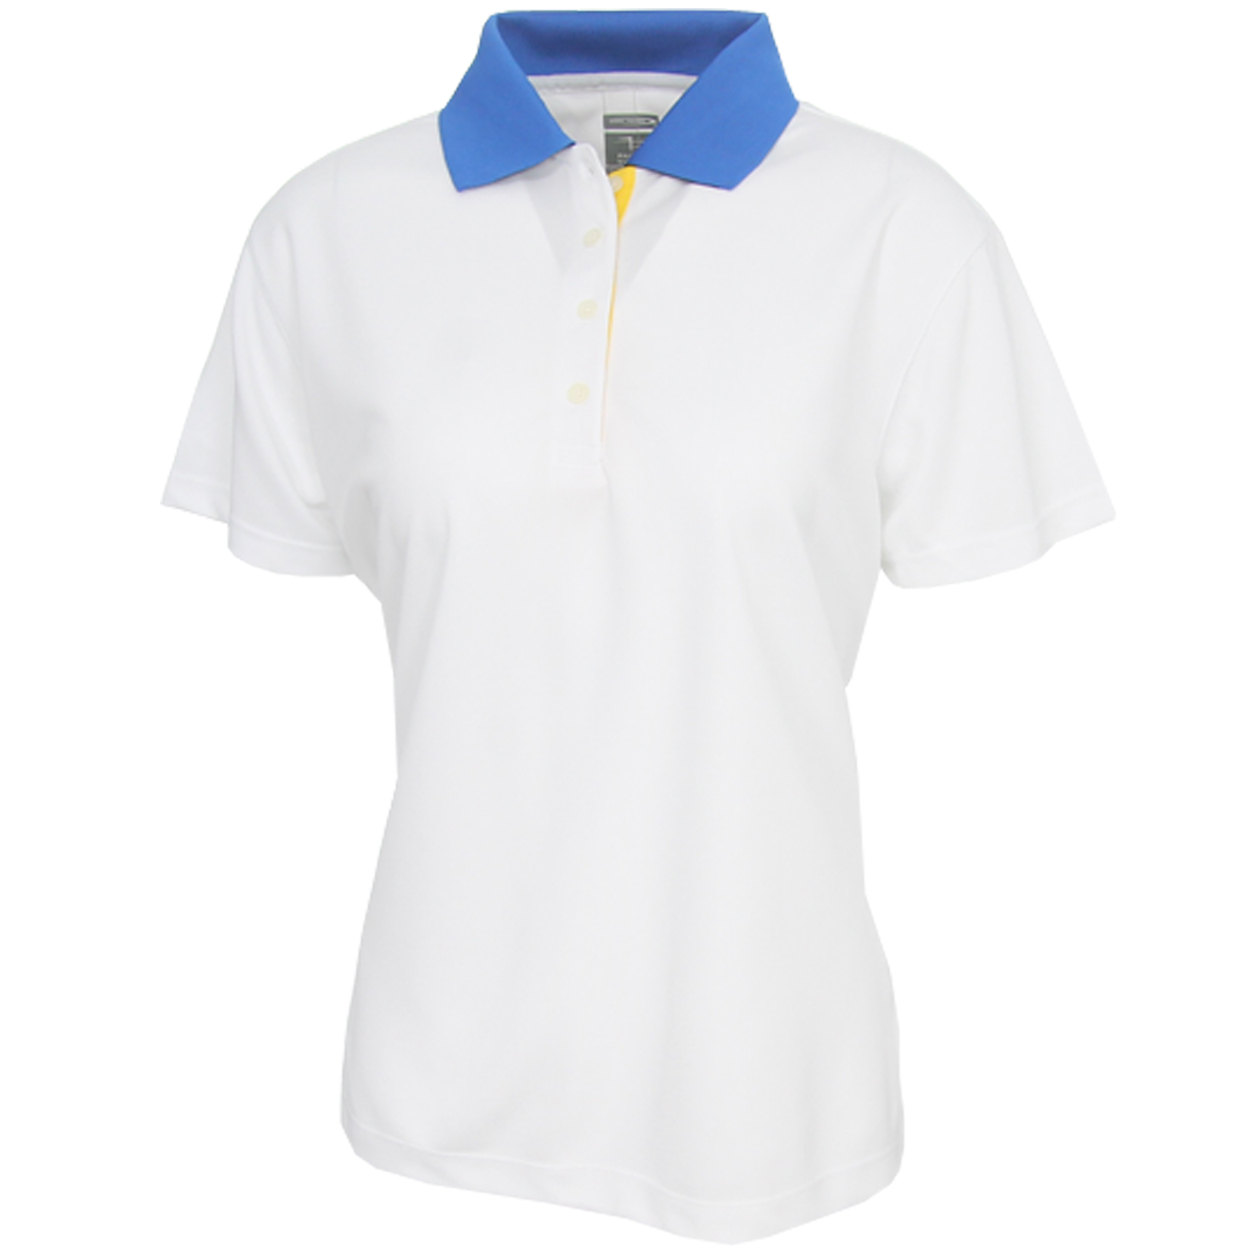 Page and Tuttle apparel is the pinnacle of performance and style. Made of 100% micro polyester with a moisture wicking / anti-microbial fabric treatment that inhibits growth of odor-causing bacteria. Perfect for lunch with your friends or a day on the links~ Page and Tuttle polos are a must for any